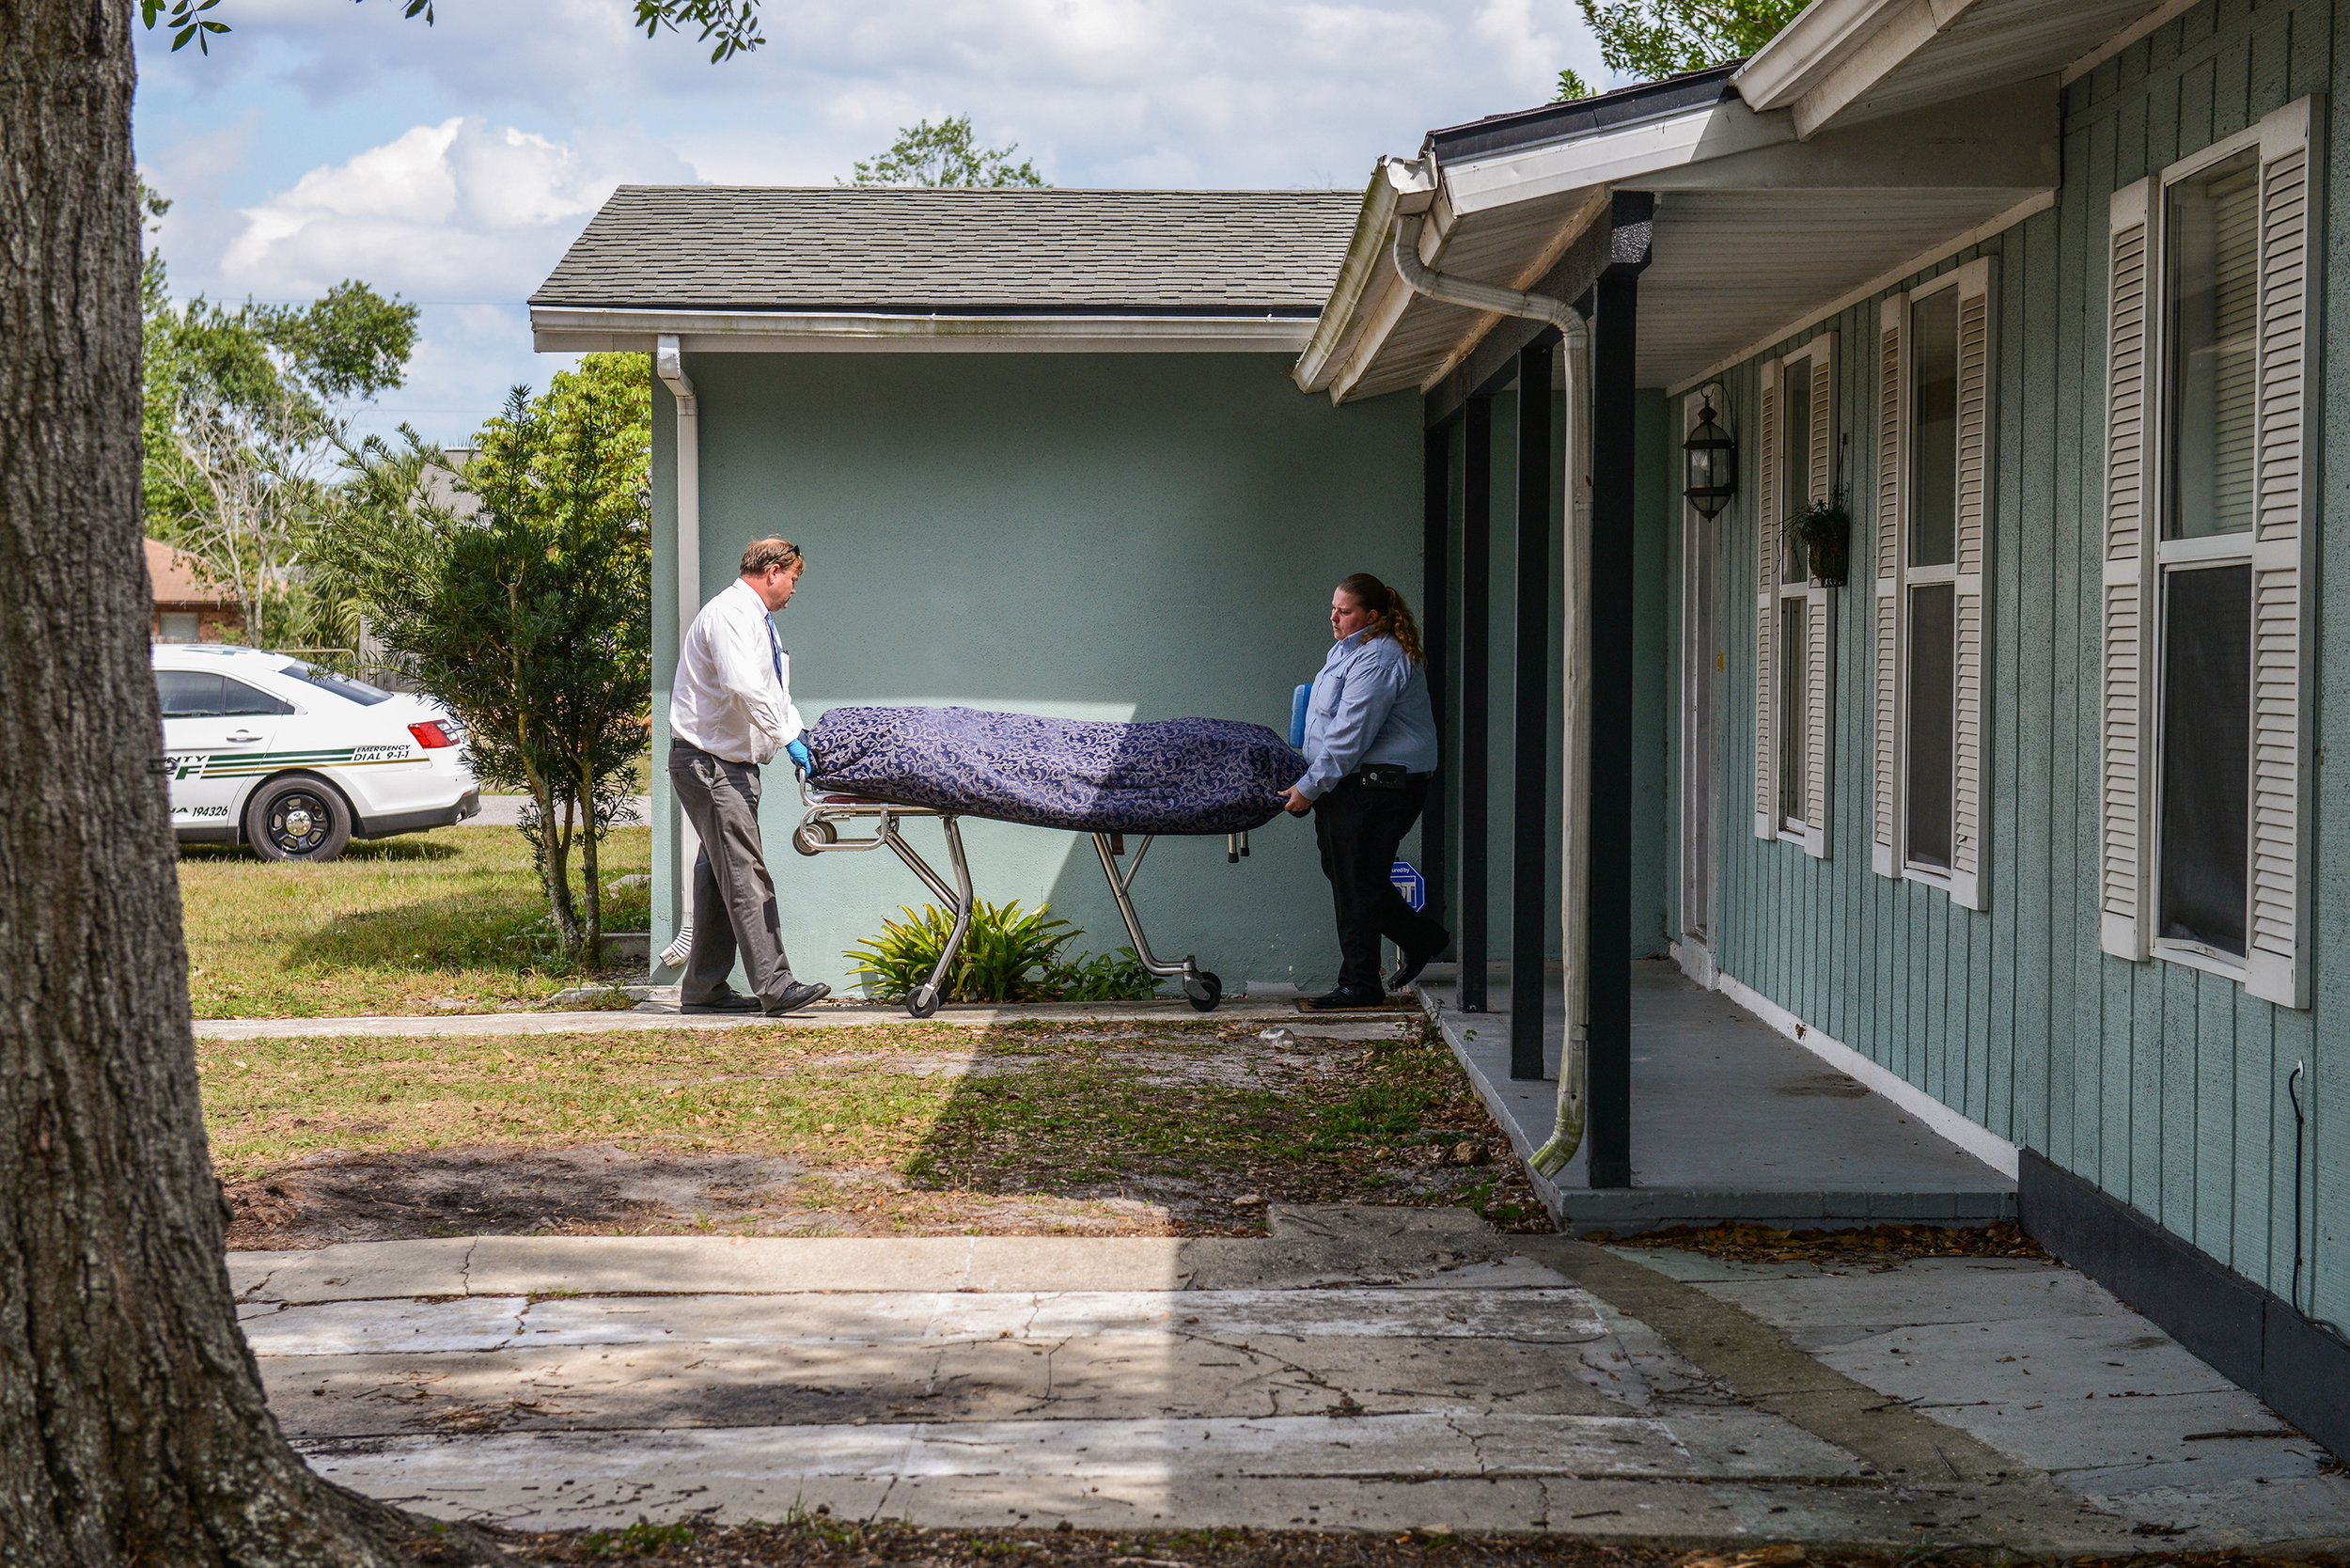 """Medical examiners remove Brian Jett's body from his girlfriend's rental home. His girlfriend, Tamara Hernandez, found Jett lying face down on a bathroom floor when she awoke. Jett, 32, was known to use heroin and meth, Volusia County Sheriff's Office Detective Sgt. Kyle McDaniel said, and the pair had purchased """"a mixture of drugs"""" the previous evening. Deltona on Monday, April 2, 2018."""